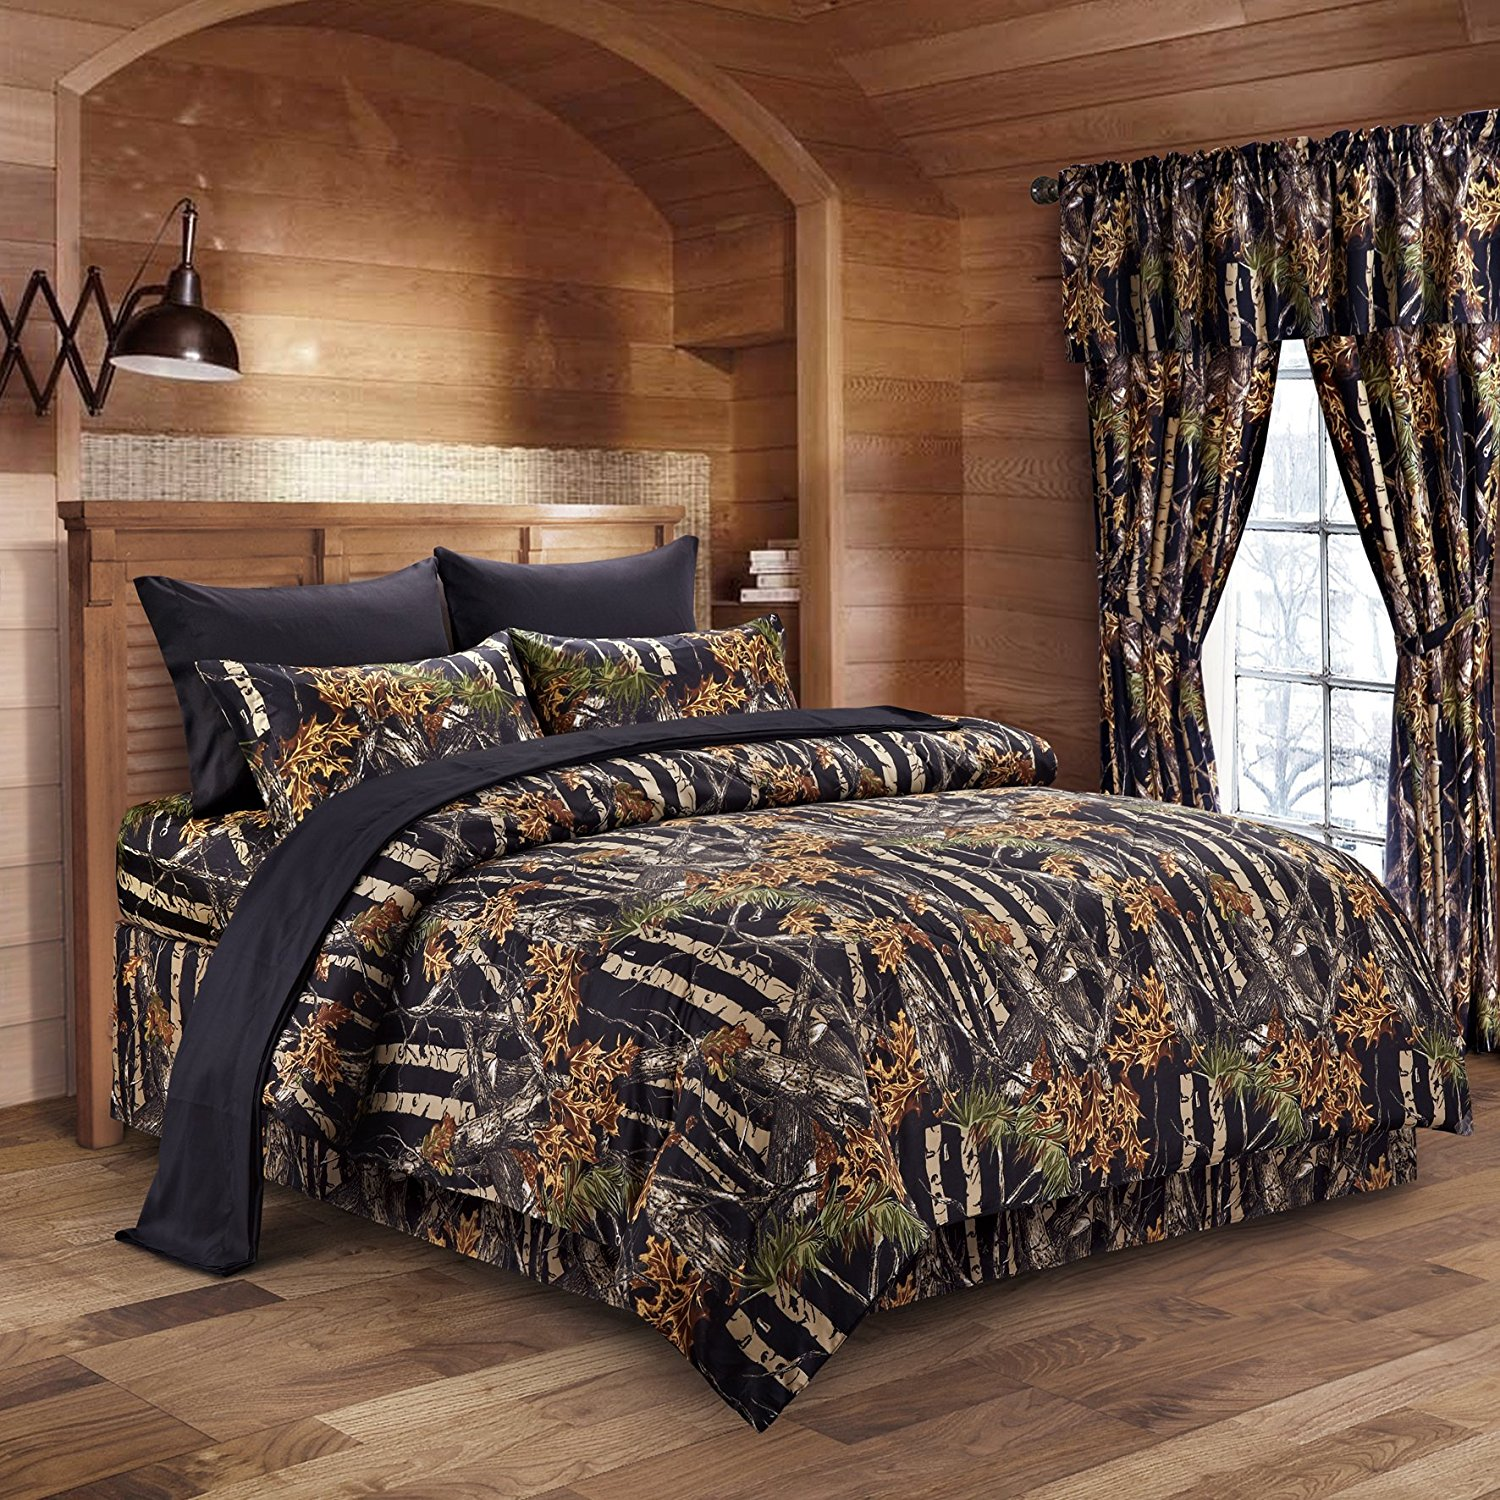 The Woods Black Camouflage Full 8pc Premium Luxury Comforter, SHeet, Pillowcases, and... by Regal Comfort